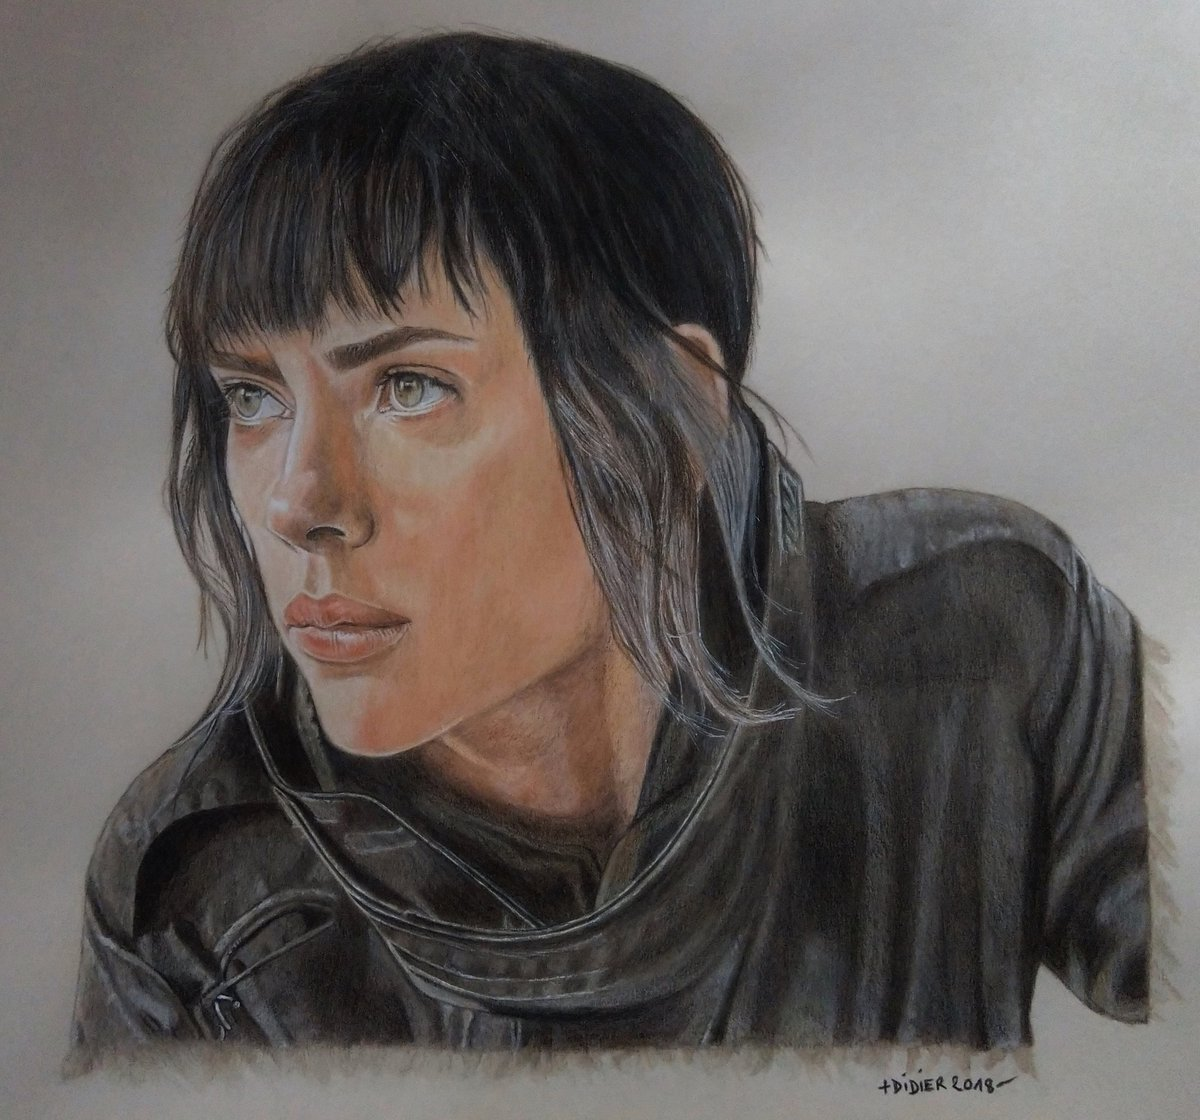 Plouviez Didier On Twitter Ghost In The Shell Major Mira Killian Scarlett Johansson Aquarelle Et Crayons Sur Canson A2 Ghostintheshell Majormirakillian Scarlettjohansson Fanart Ghostintheshellfanart Ghostintheshelldrawing Drawing